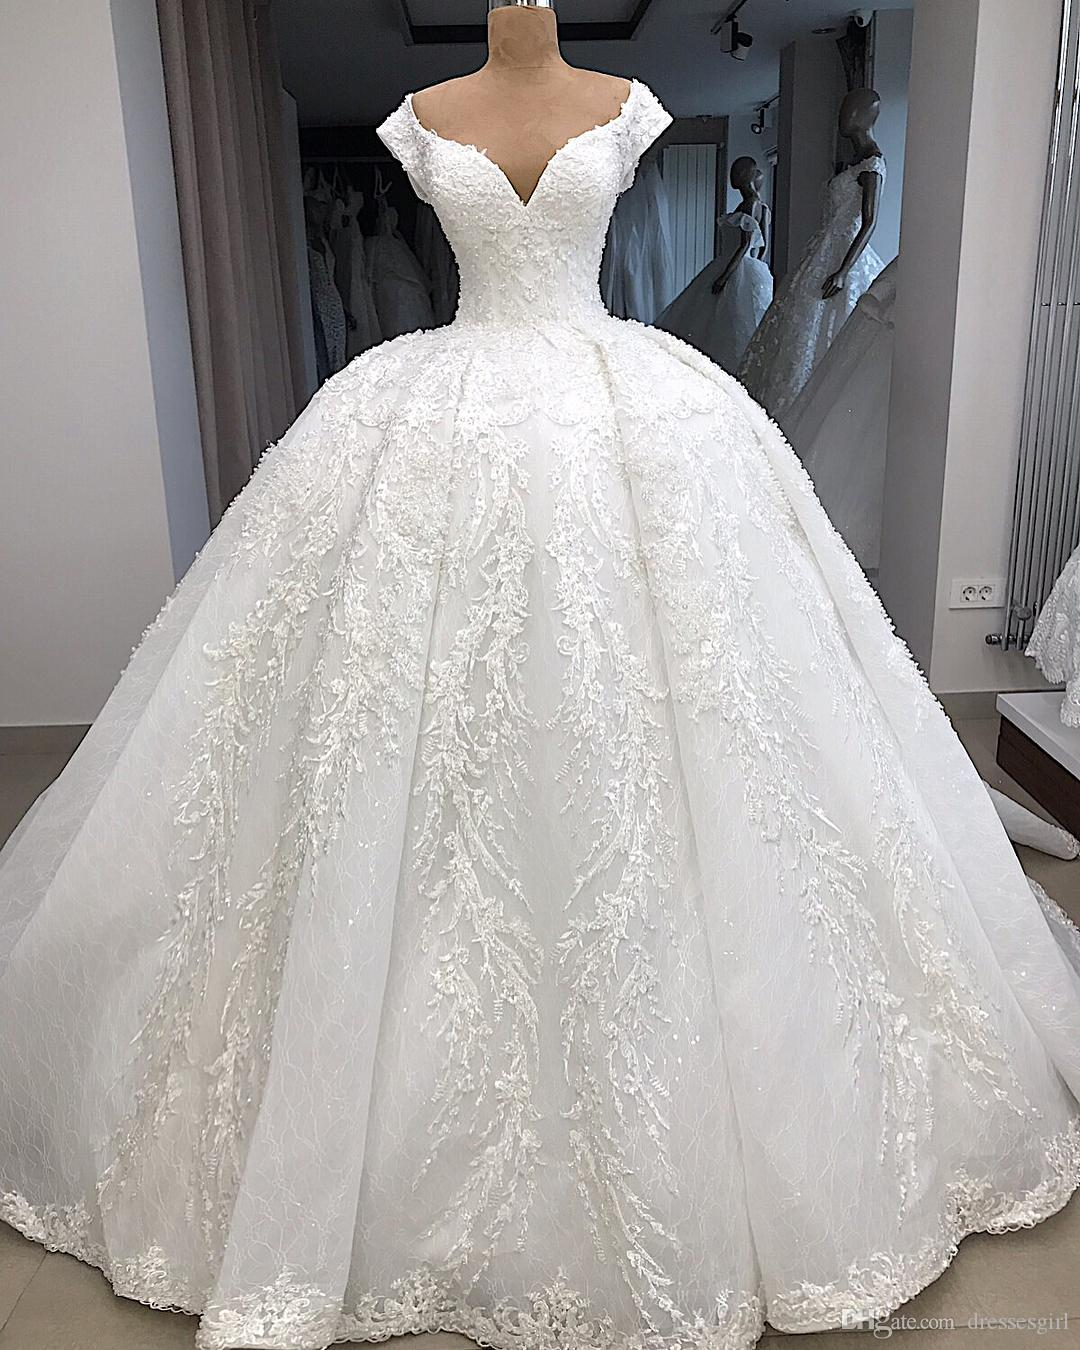 2019 Stunning Off Shoulder Ball Gown Wedding Dresses Appliques Sweetheart Neck Bridal Gown robe de mariee